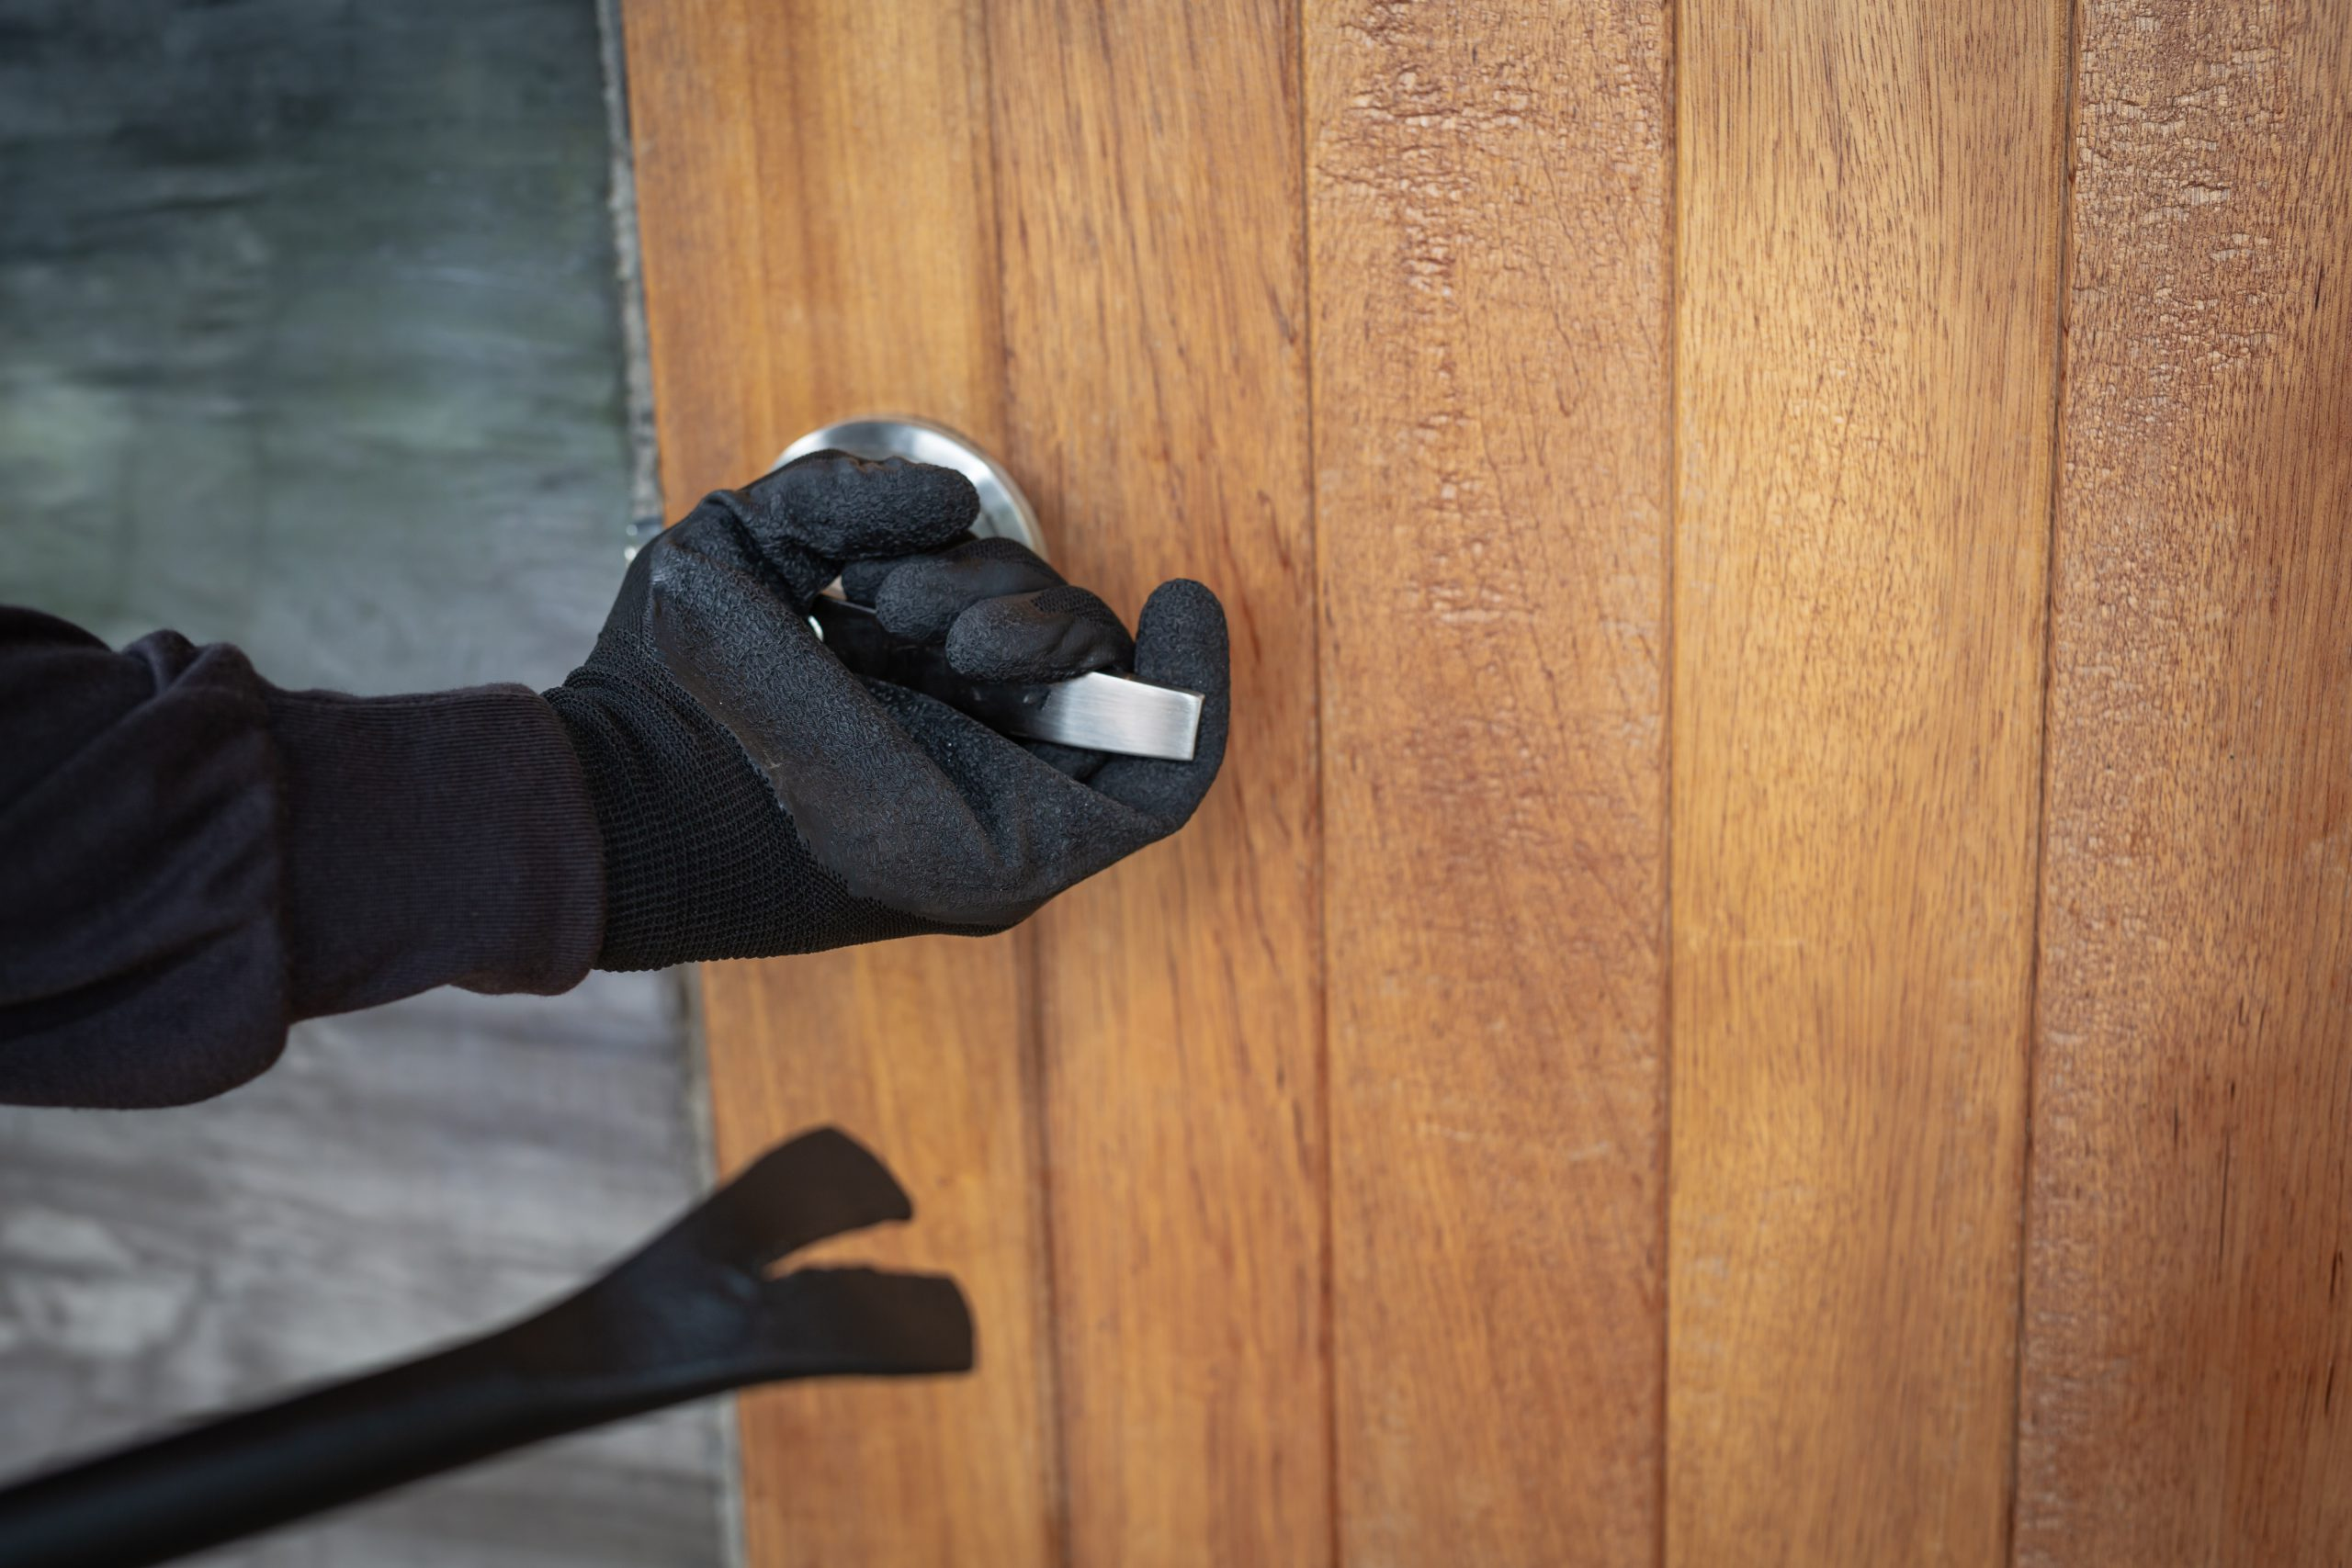 Victim of House Robbery – What to Do Next?